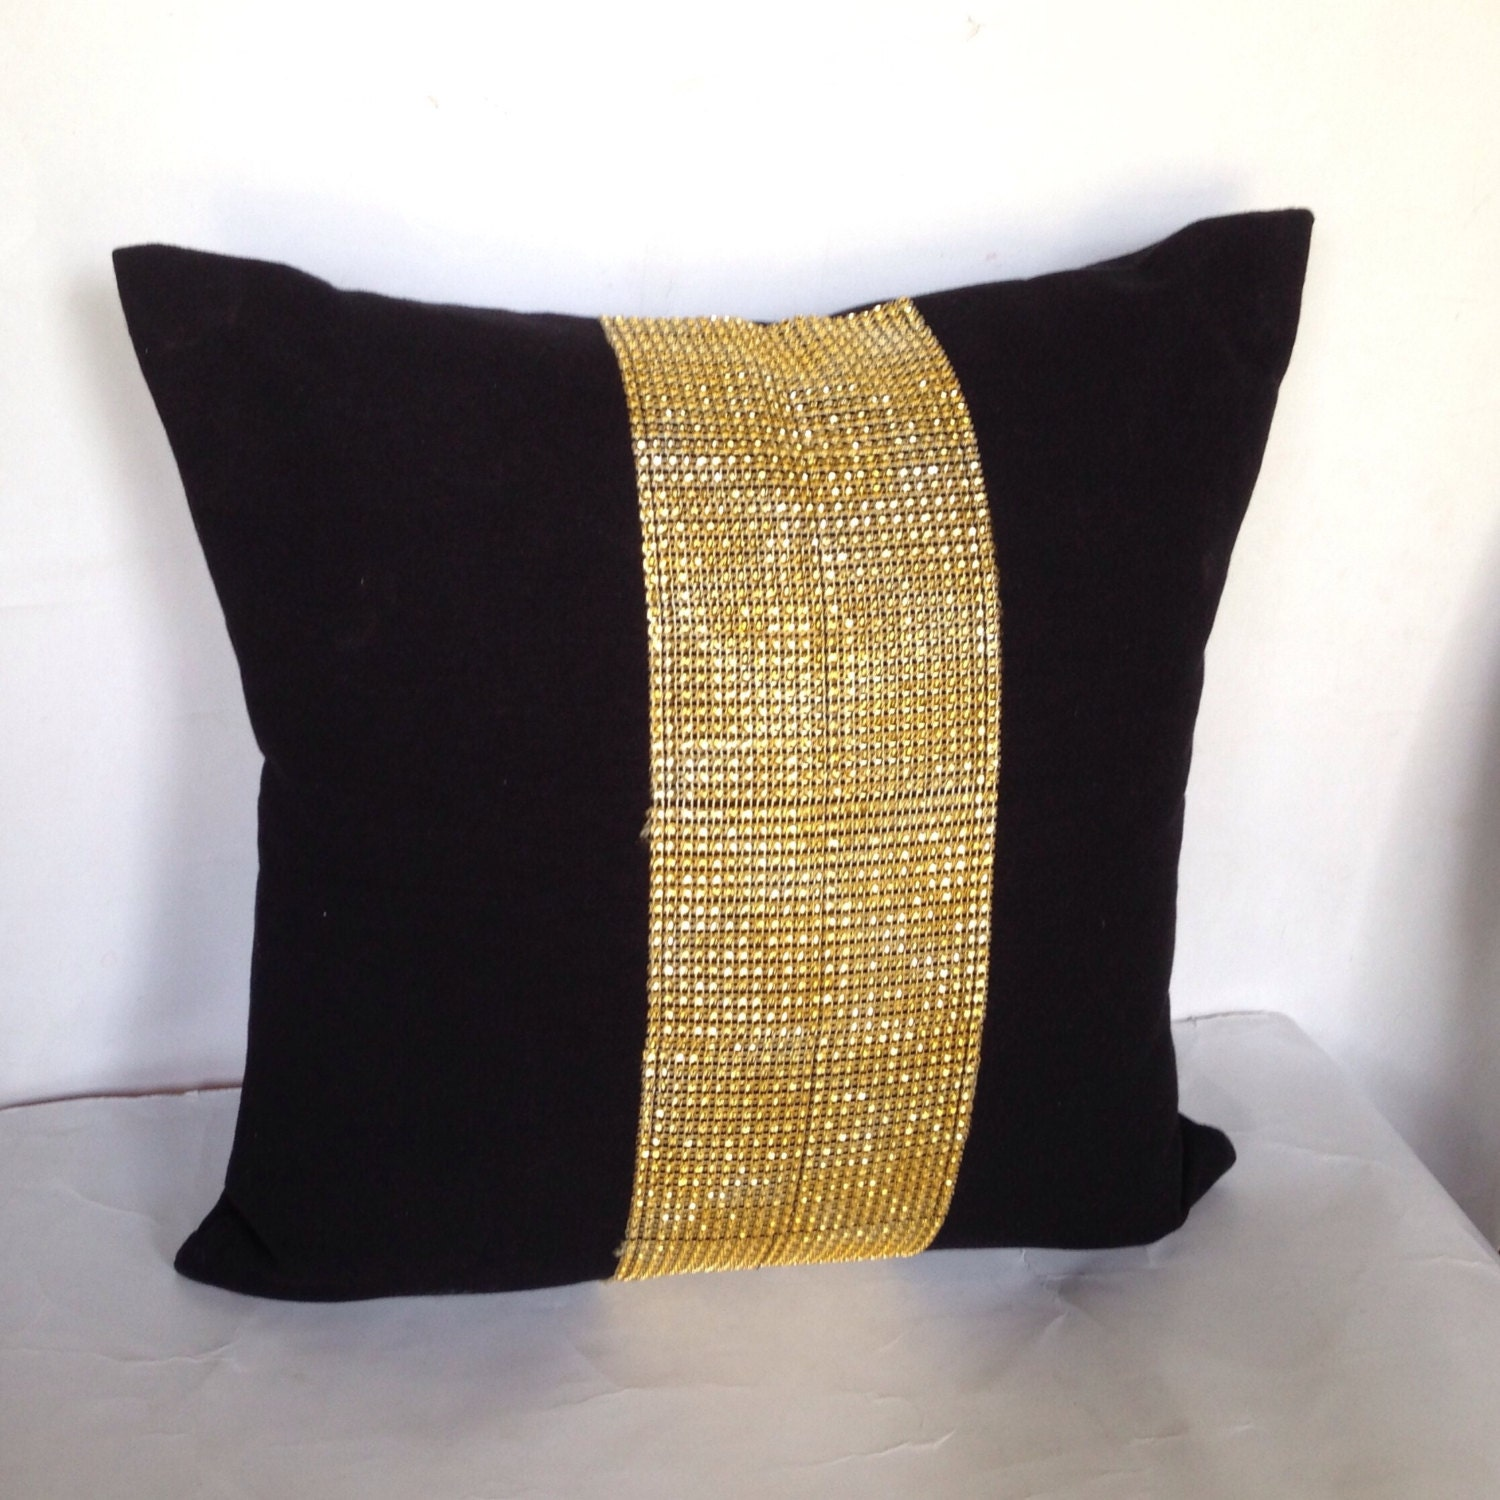 Decorative Pillow Black : FREE SHIPPING Metalic Decorative Black Throw Pillows 16 inch